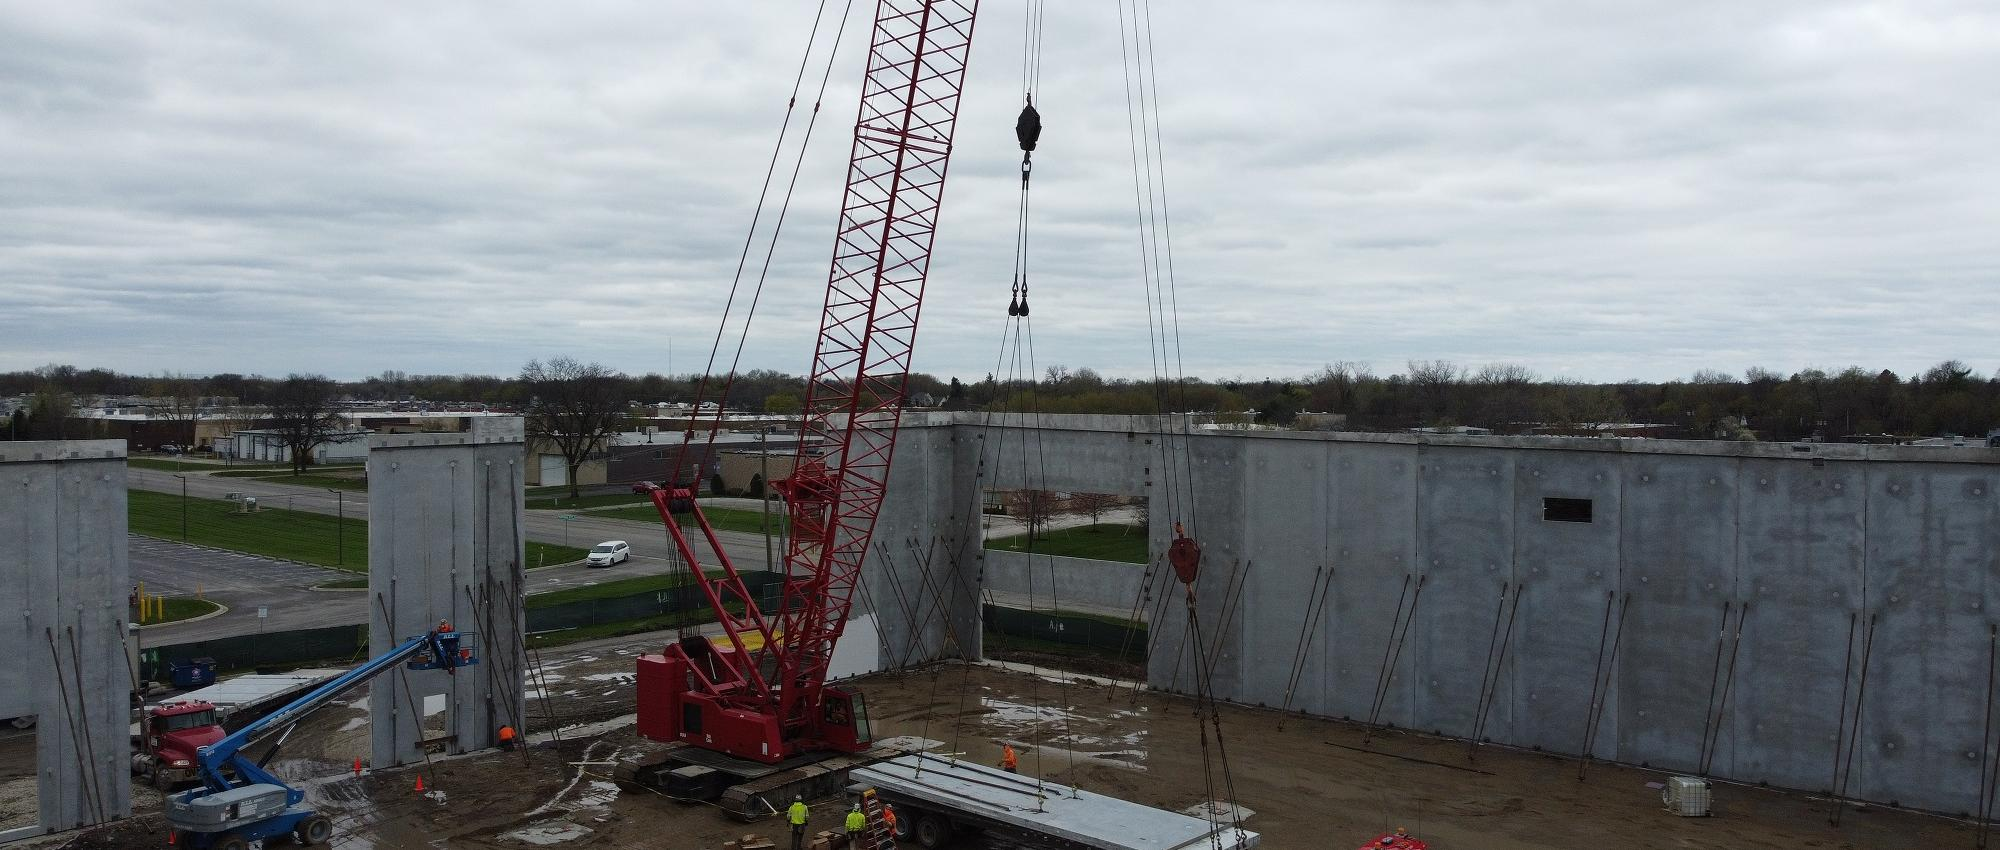 erecting wall panels at Hicks Road in Palatine, IL